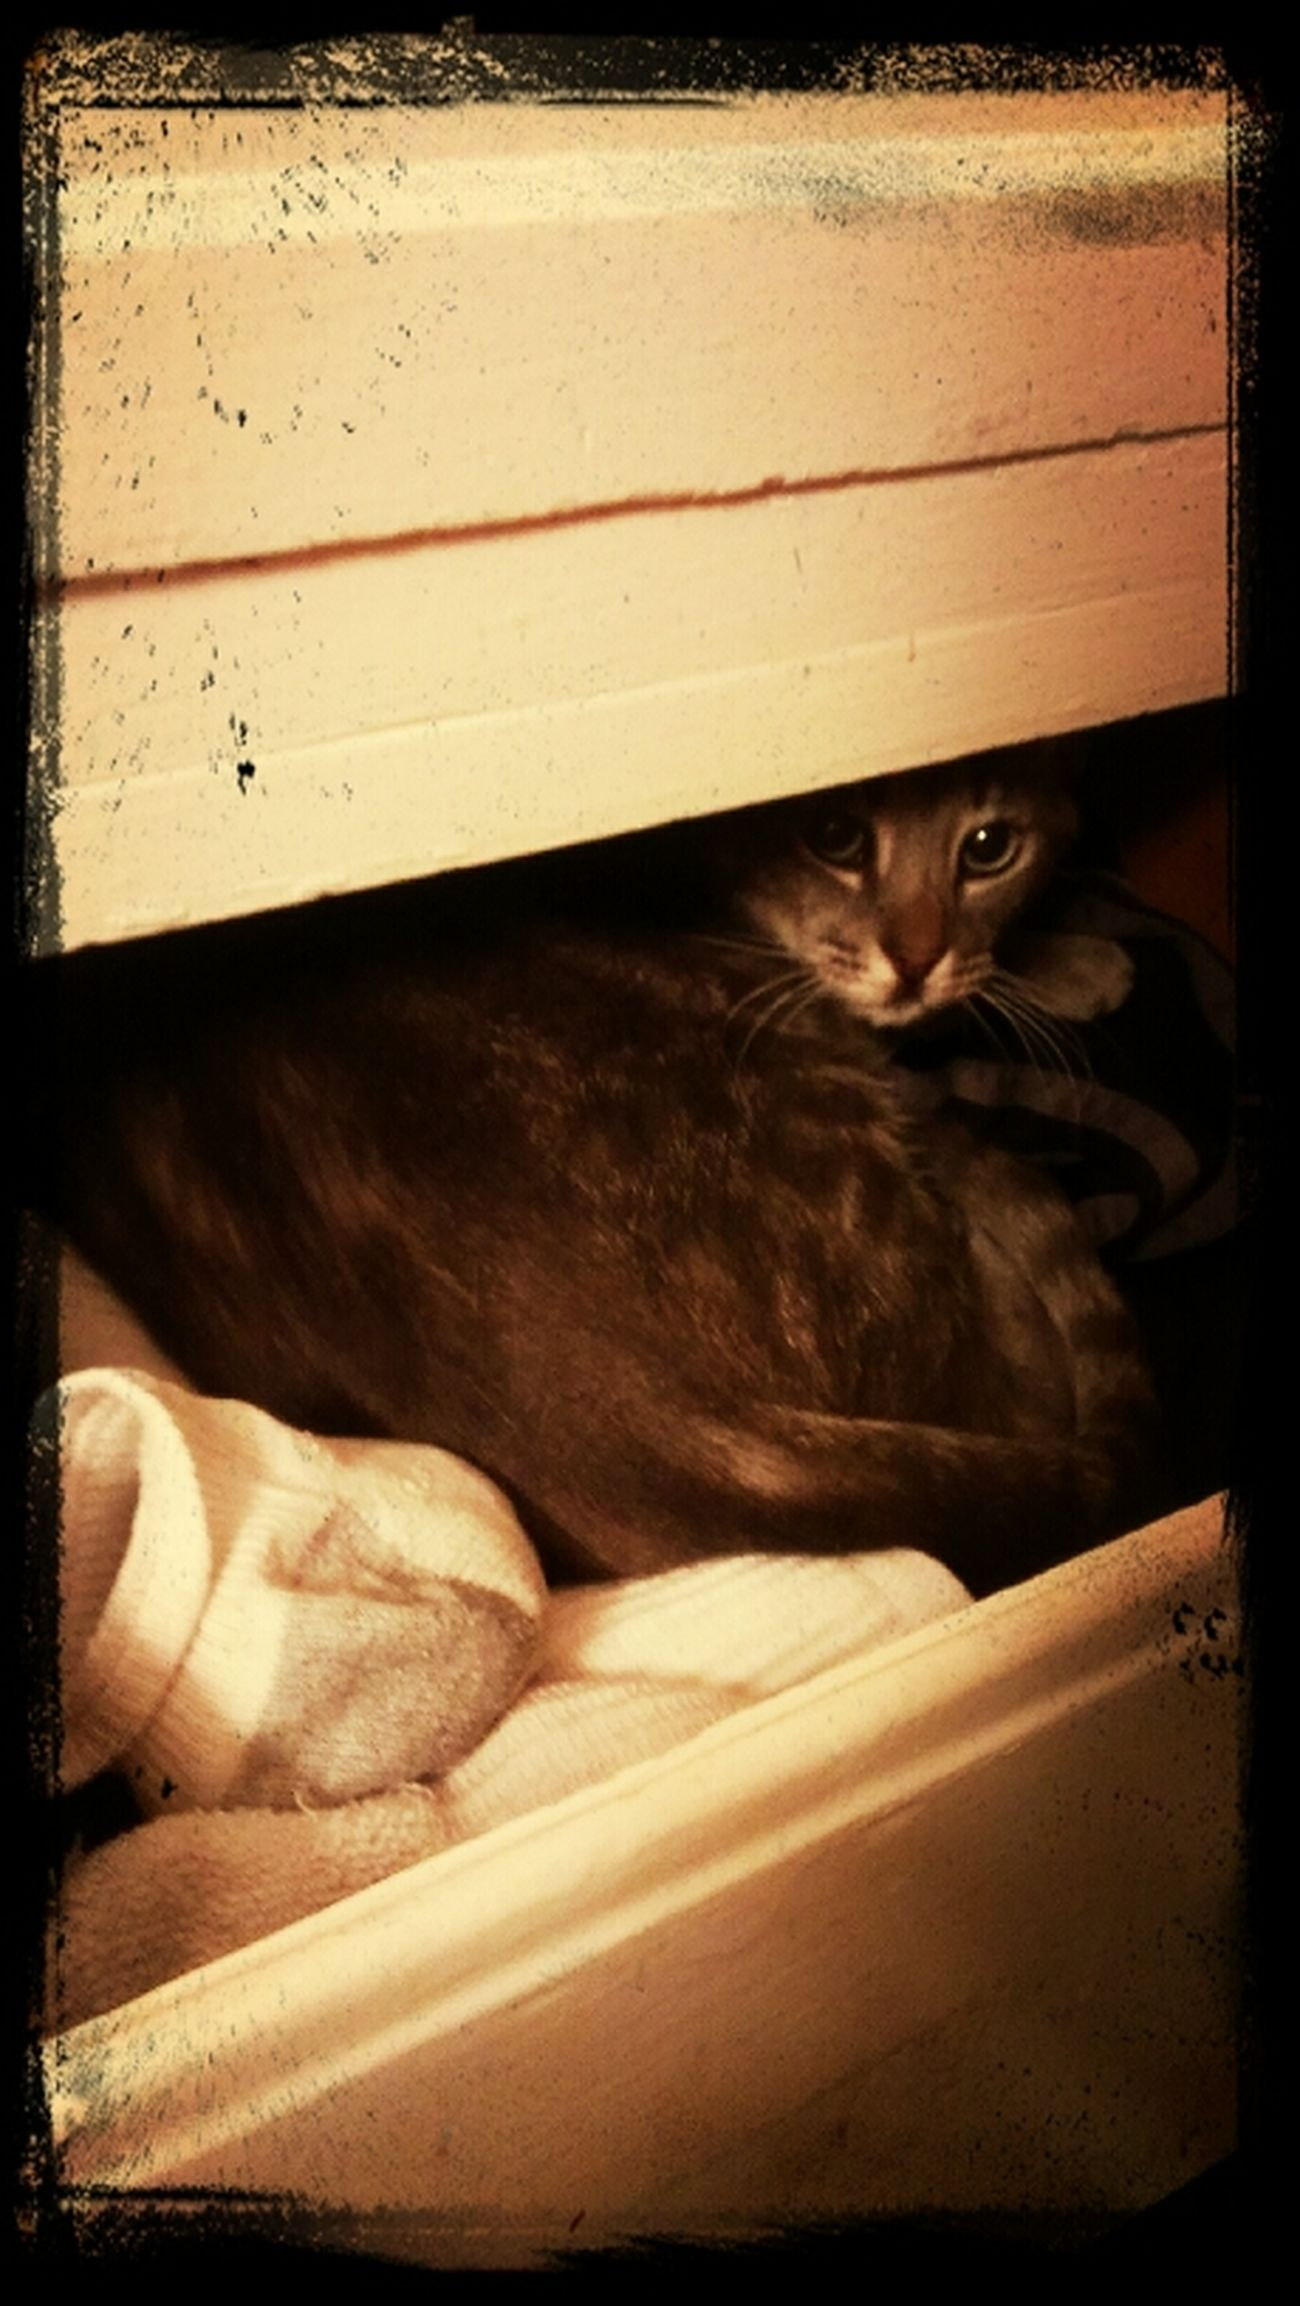 sock drawer cat